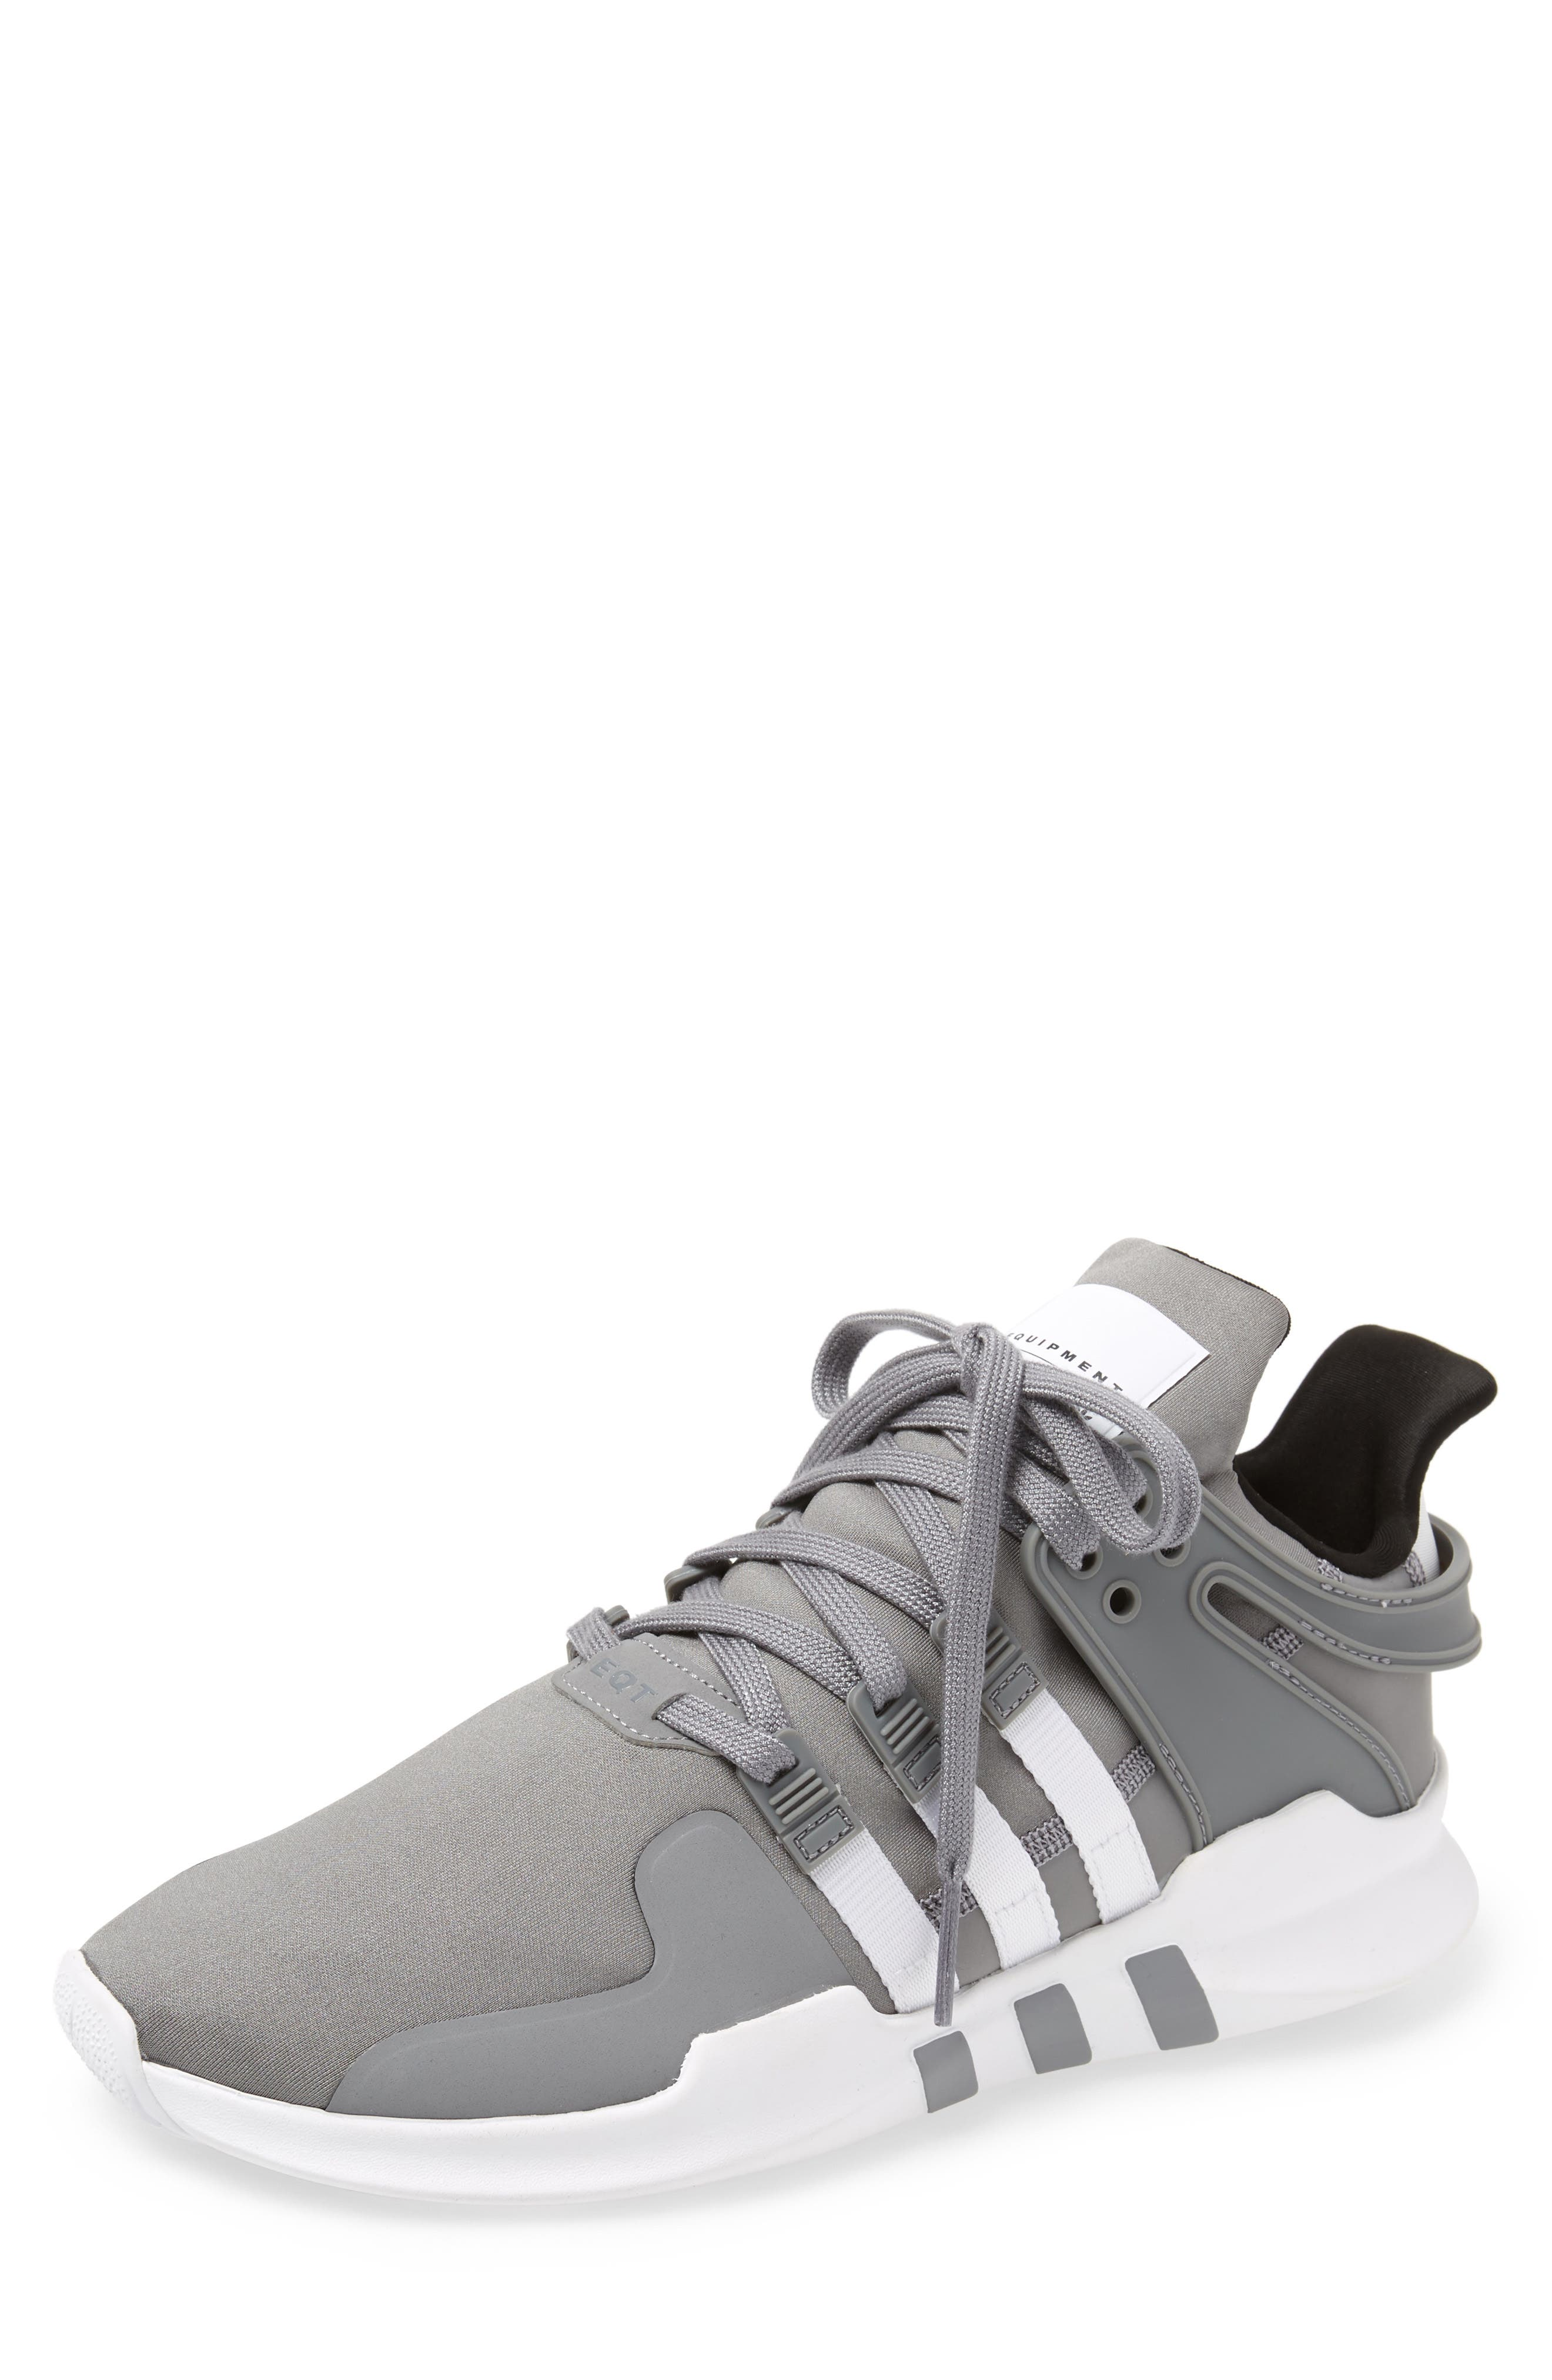 EQT Support Adv Sneaker,                         Main,                         color, 003